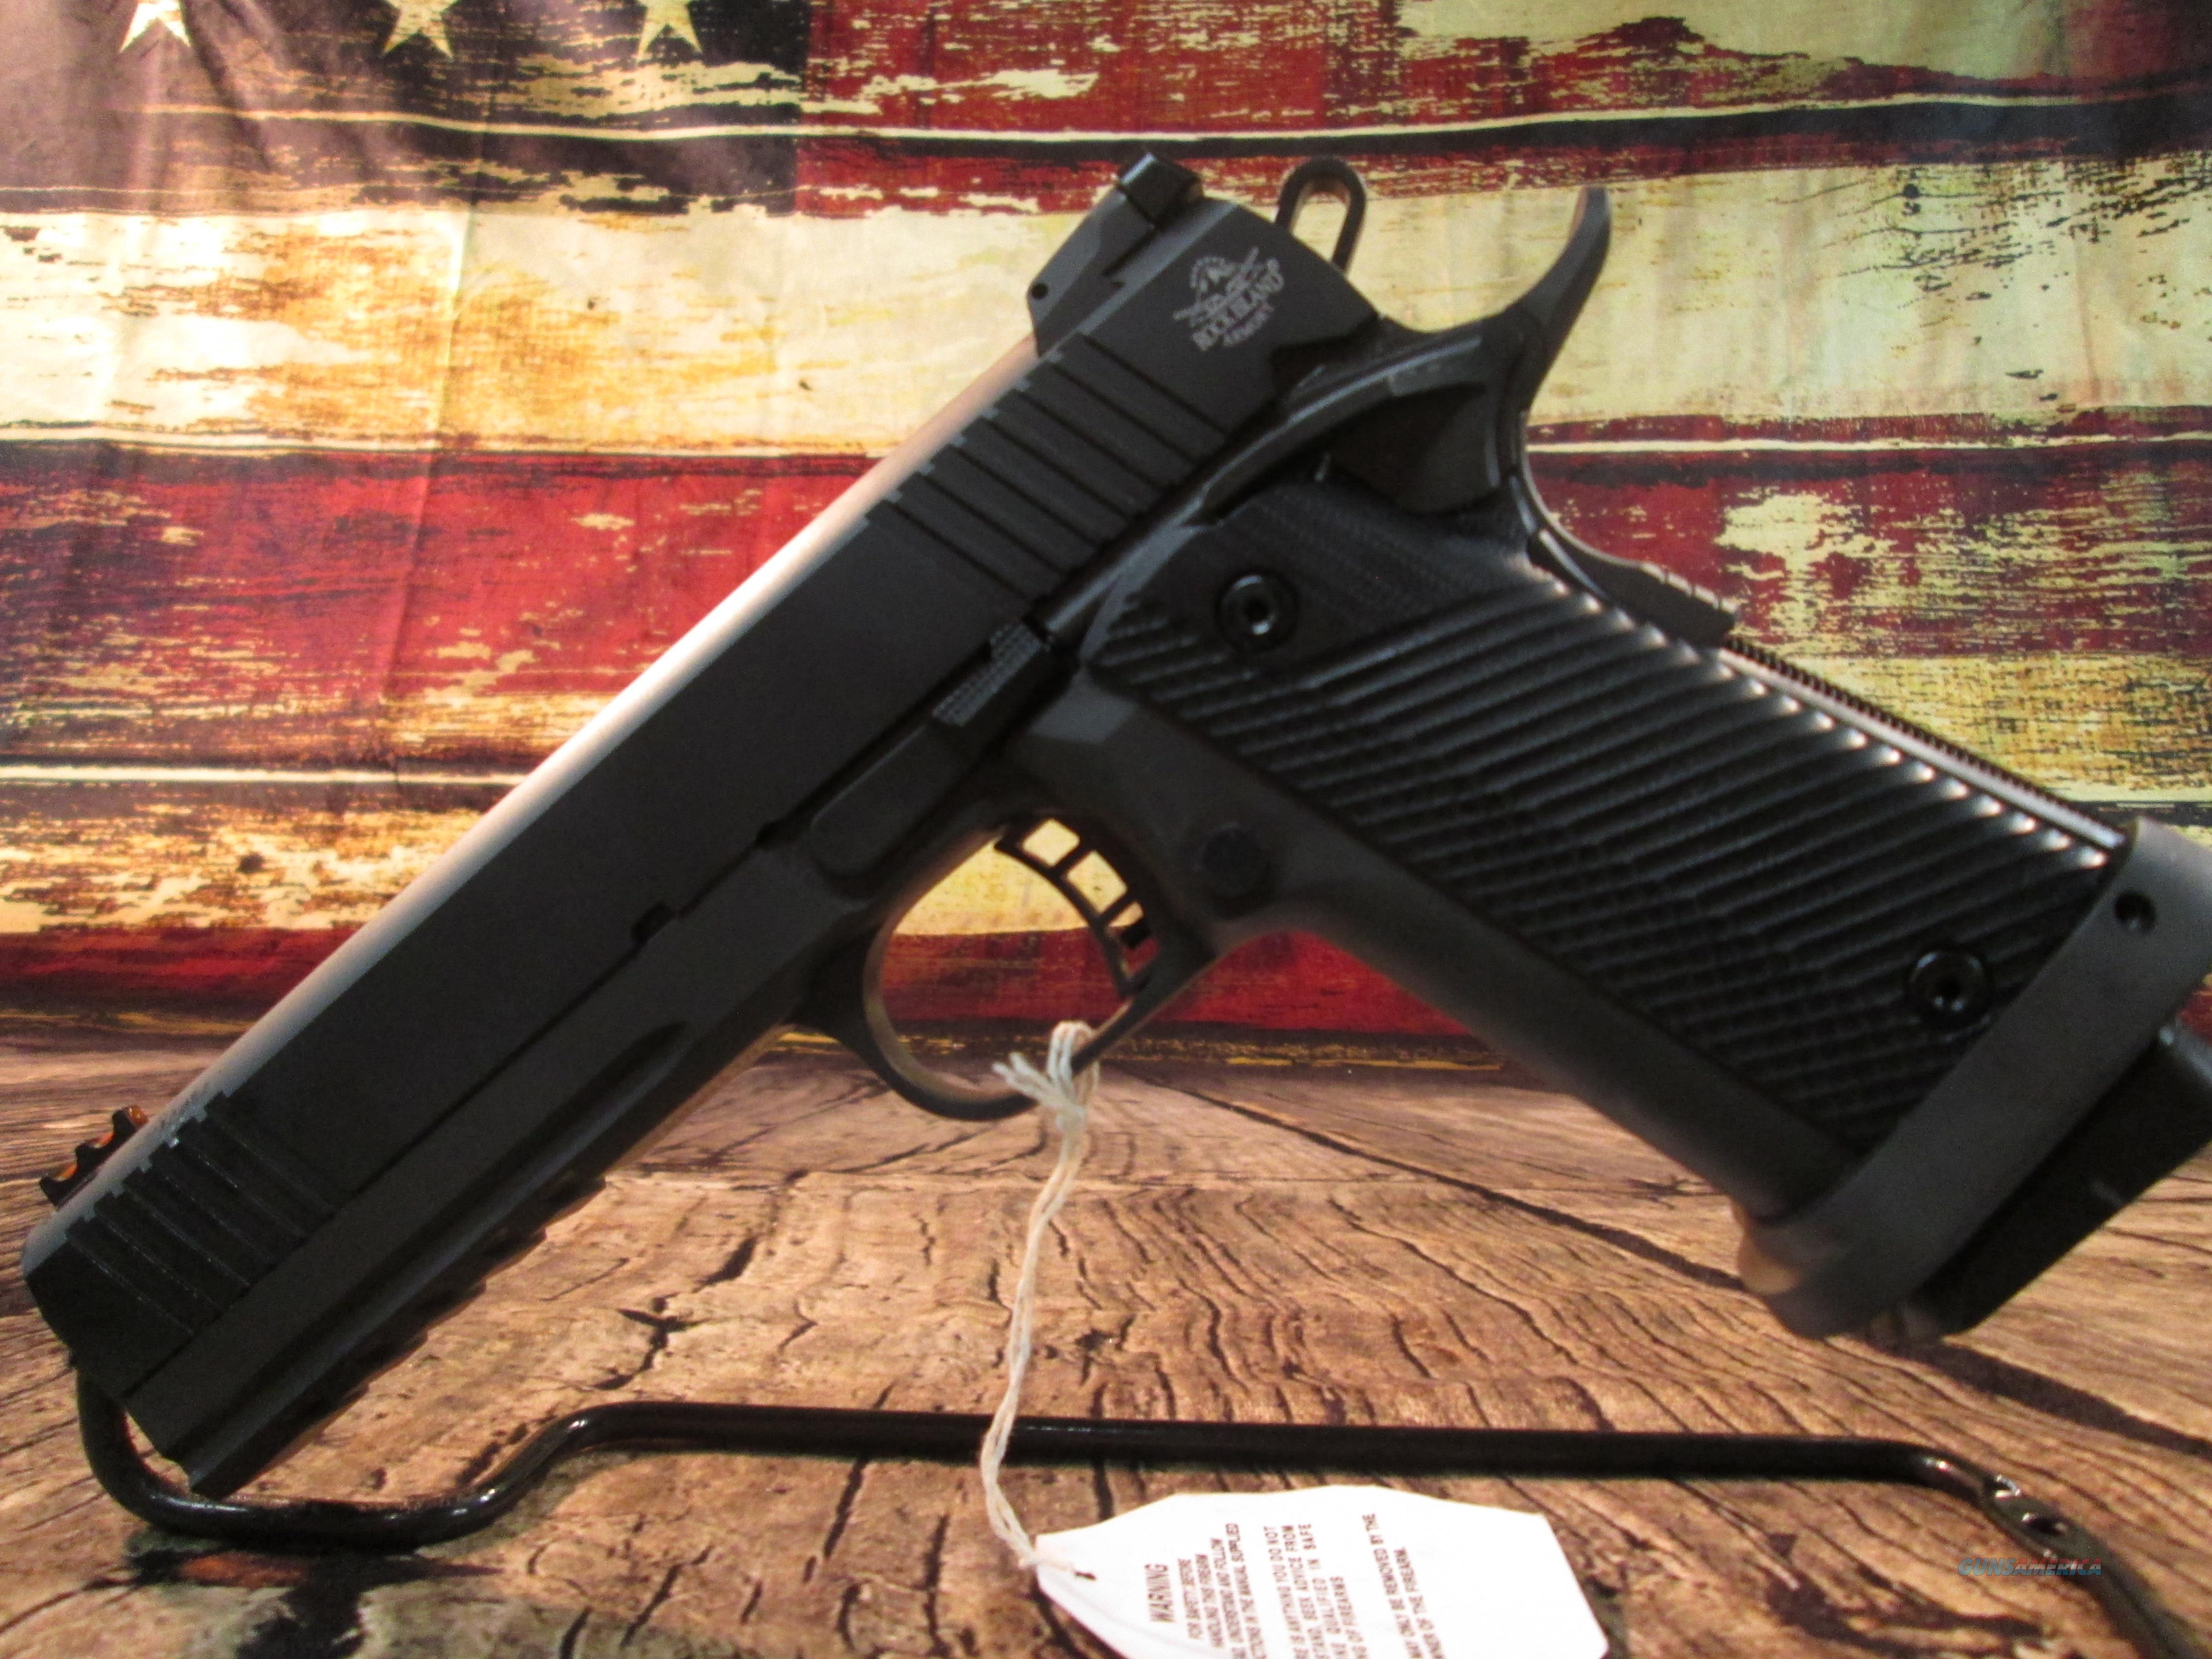 ROCK ISLAND TAC ULTRA 9MM NEW (51679)  Guns > Pistols > Armscor Pistols > Rock Island